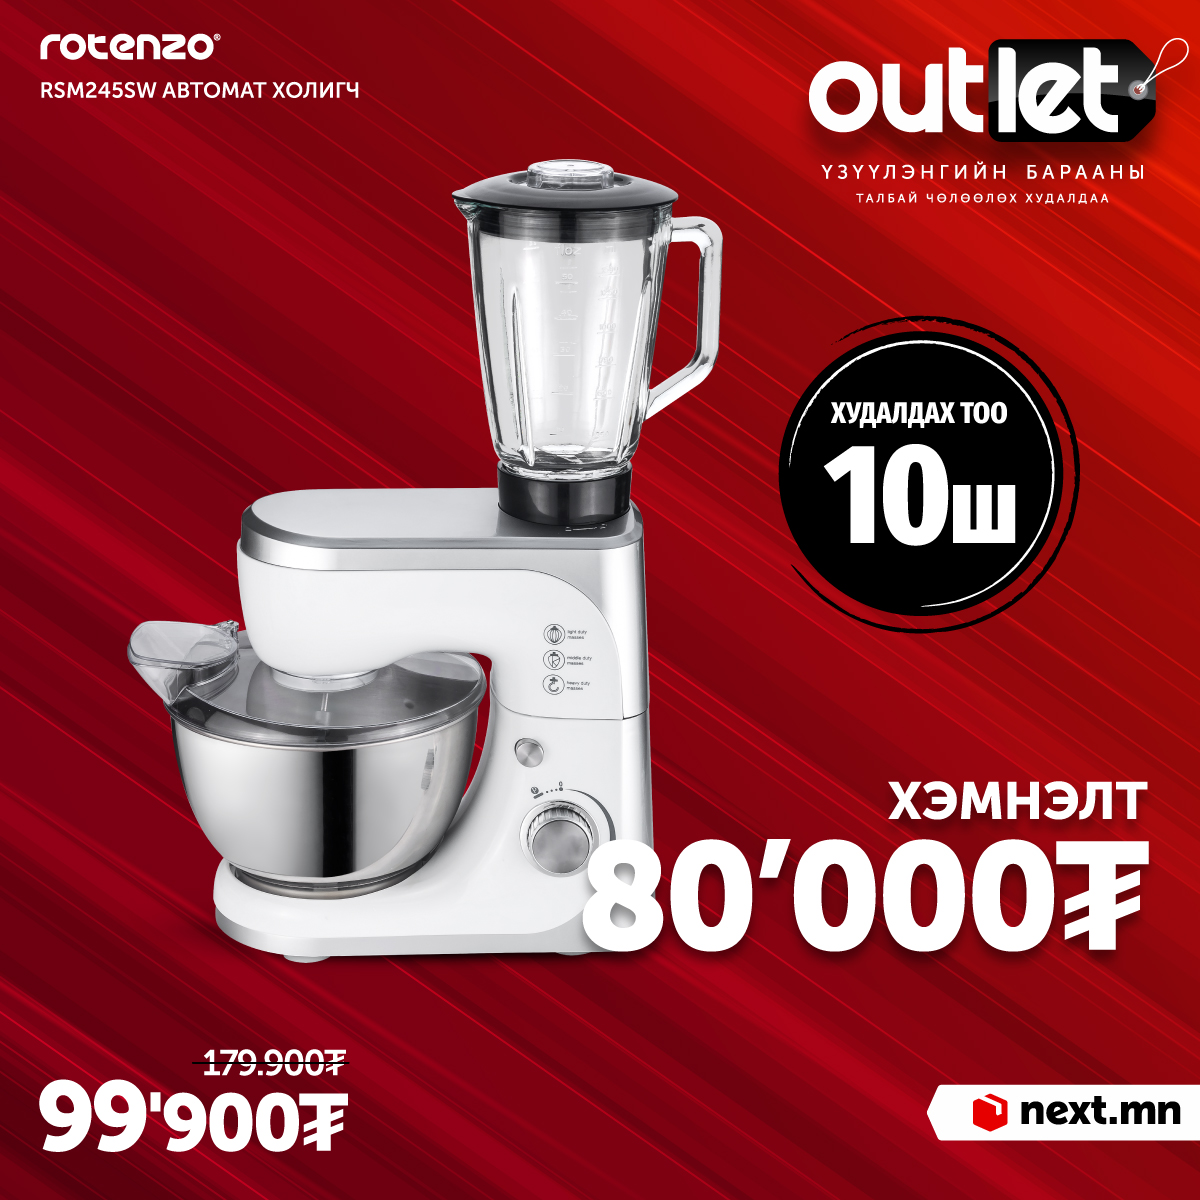 outlet (14)